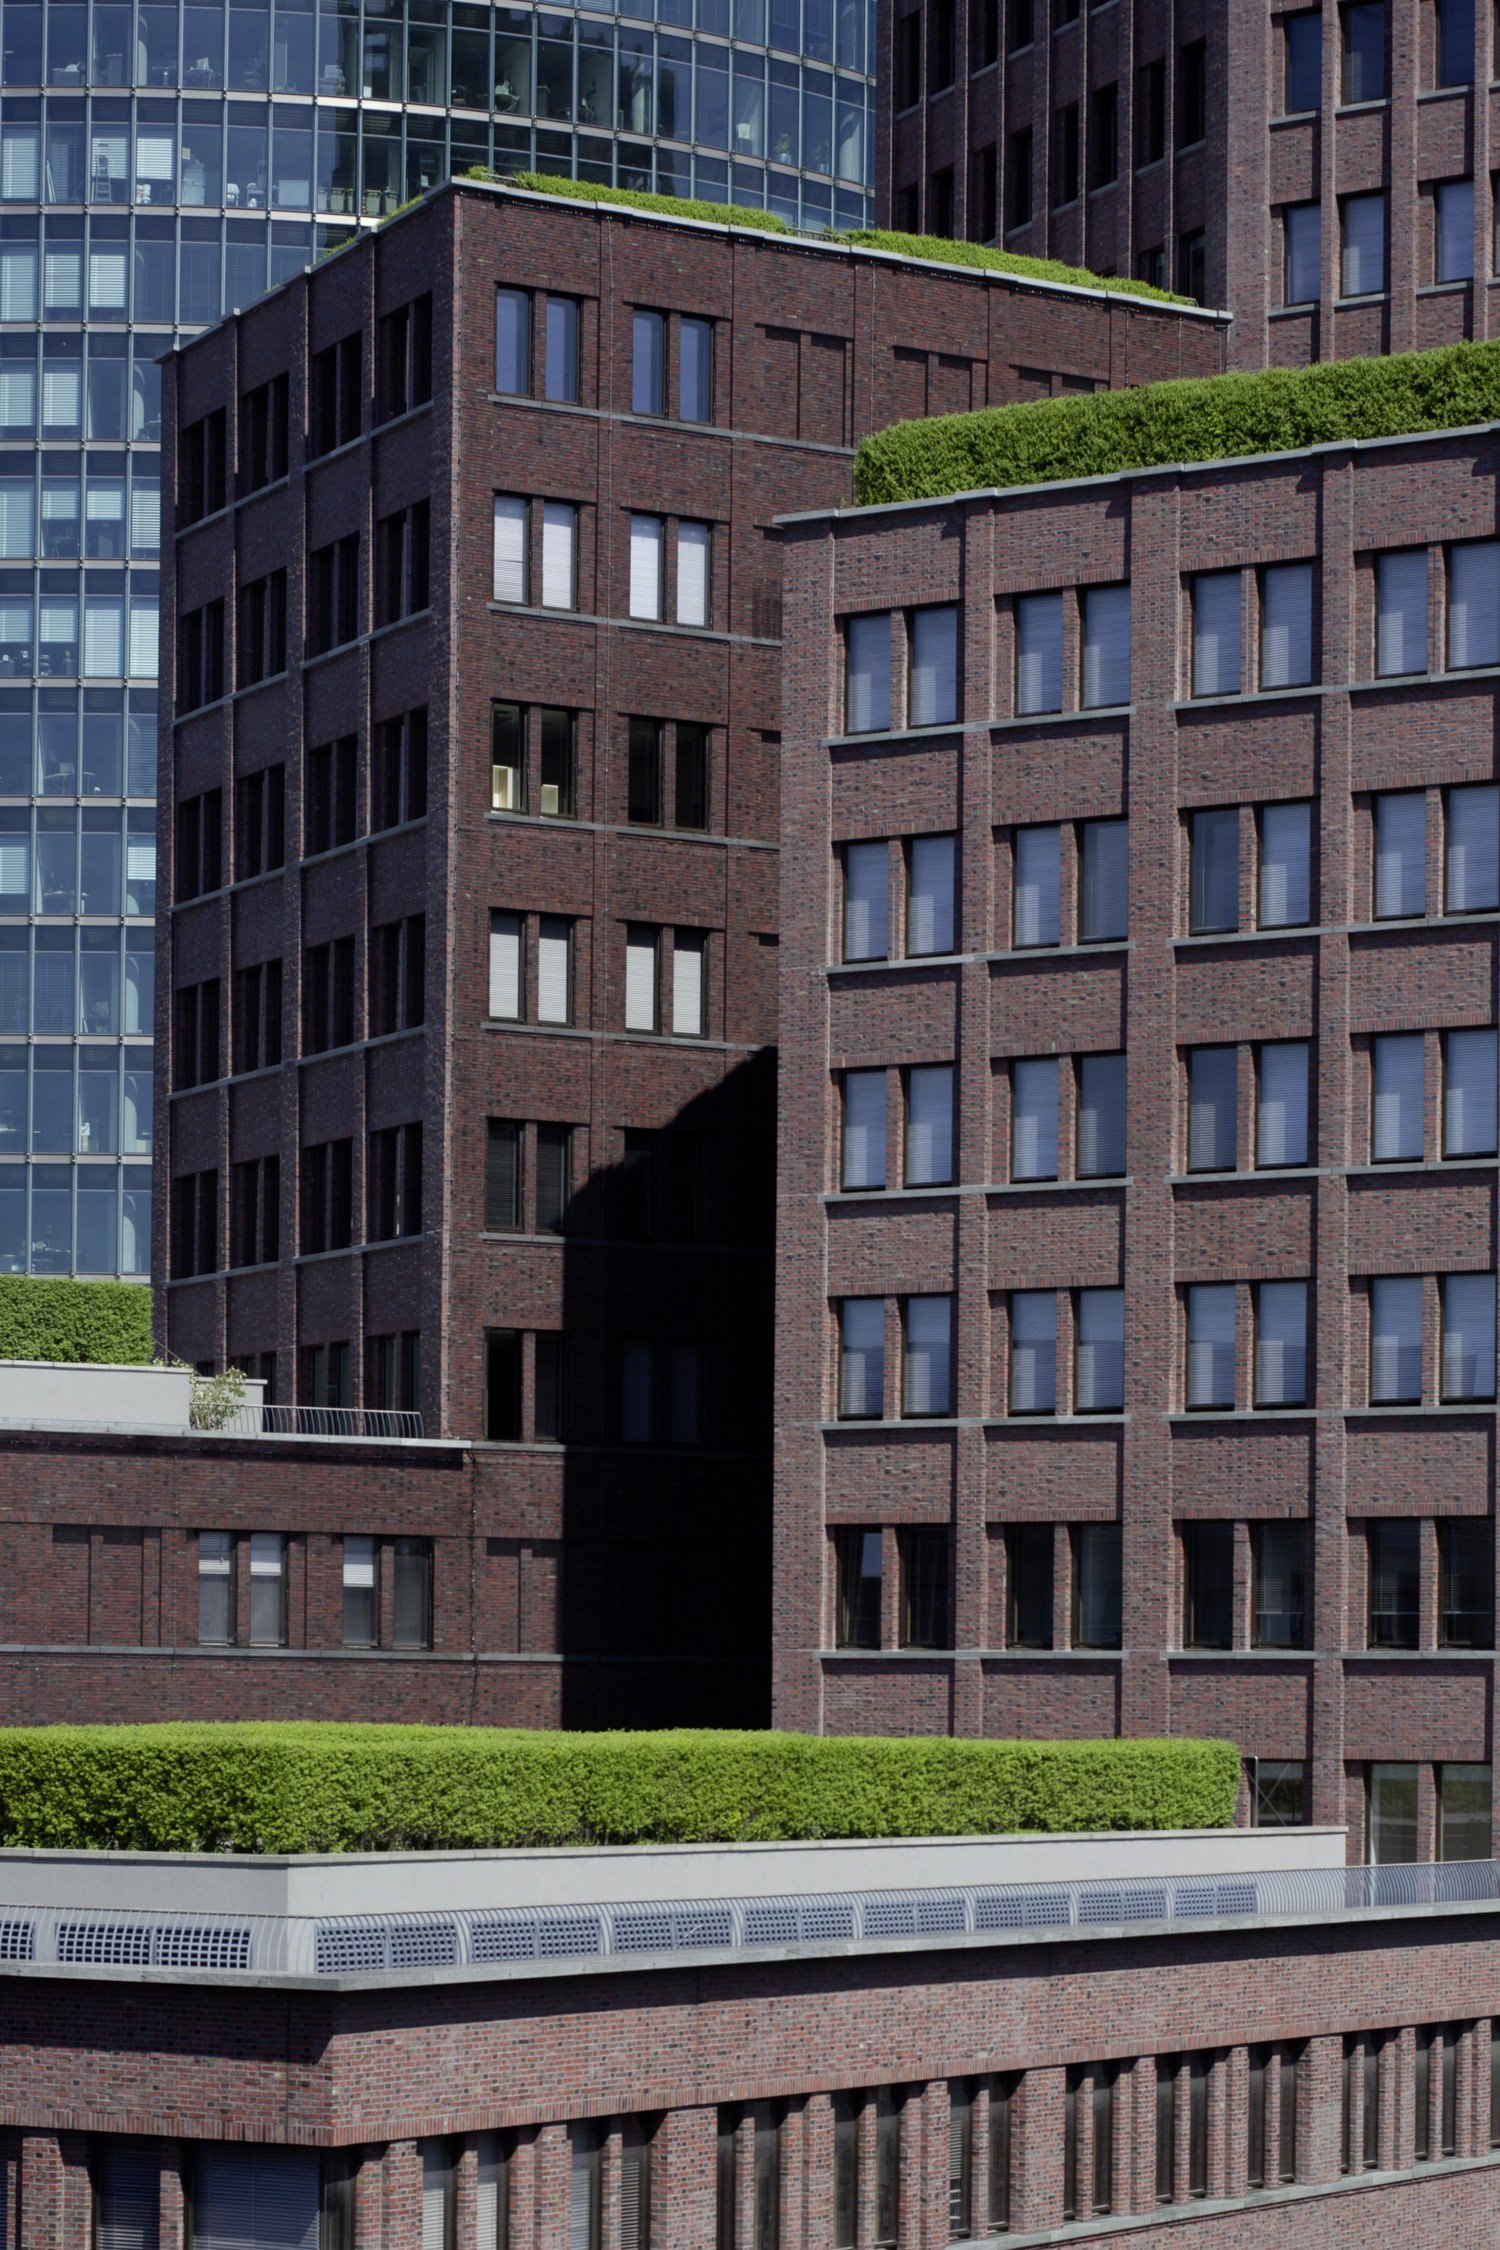 A view of a rooftop of a building that have green grass and plants on it and windows looking out to it.